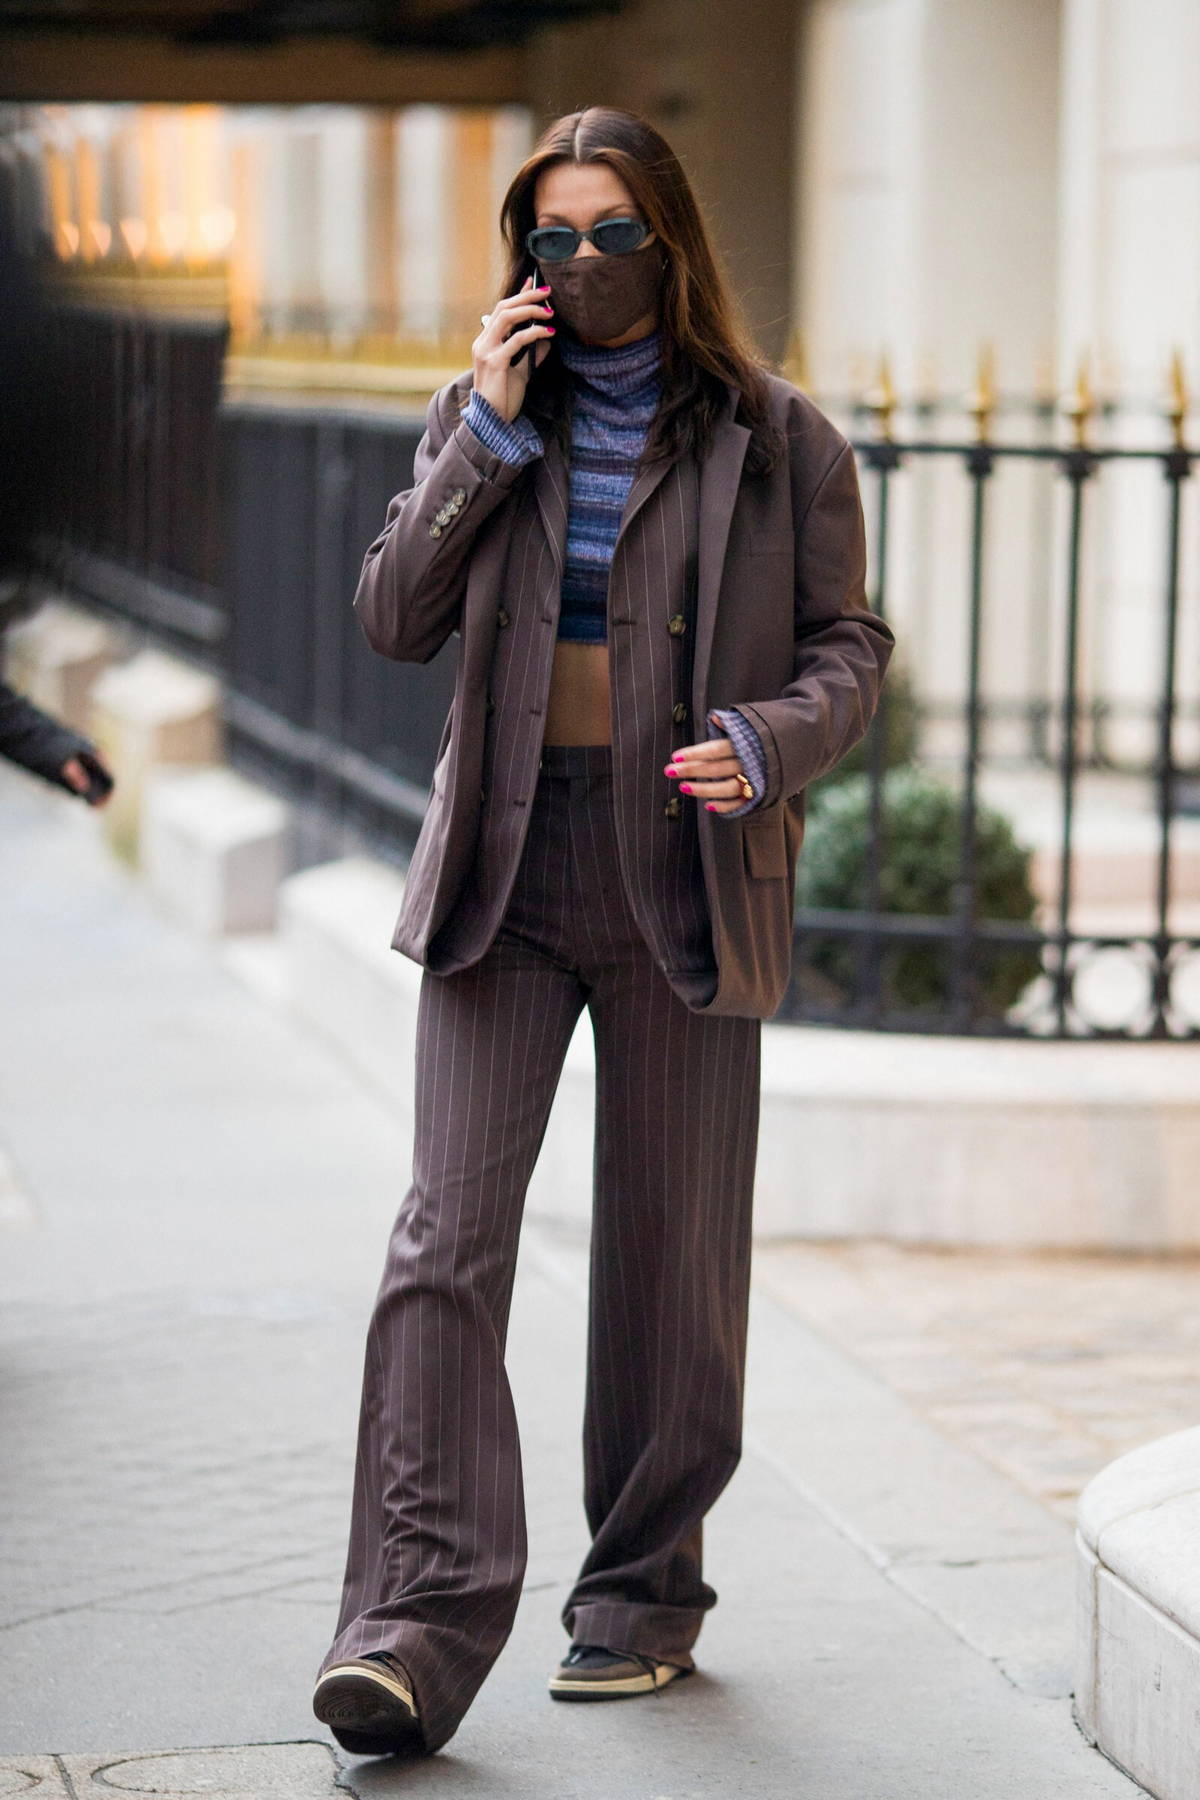 Bella Hadid shows off her abs while stepping out wearing a crop top with a pinstriped suit in Paris, France